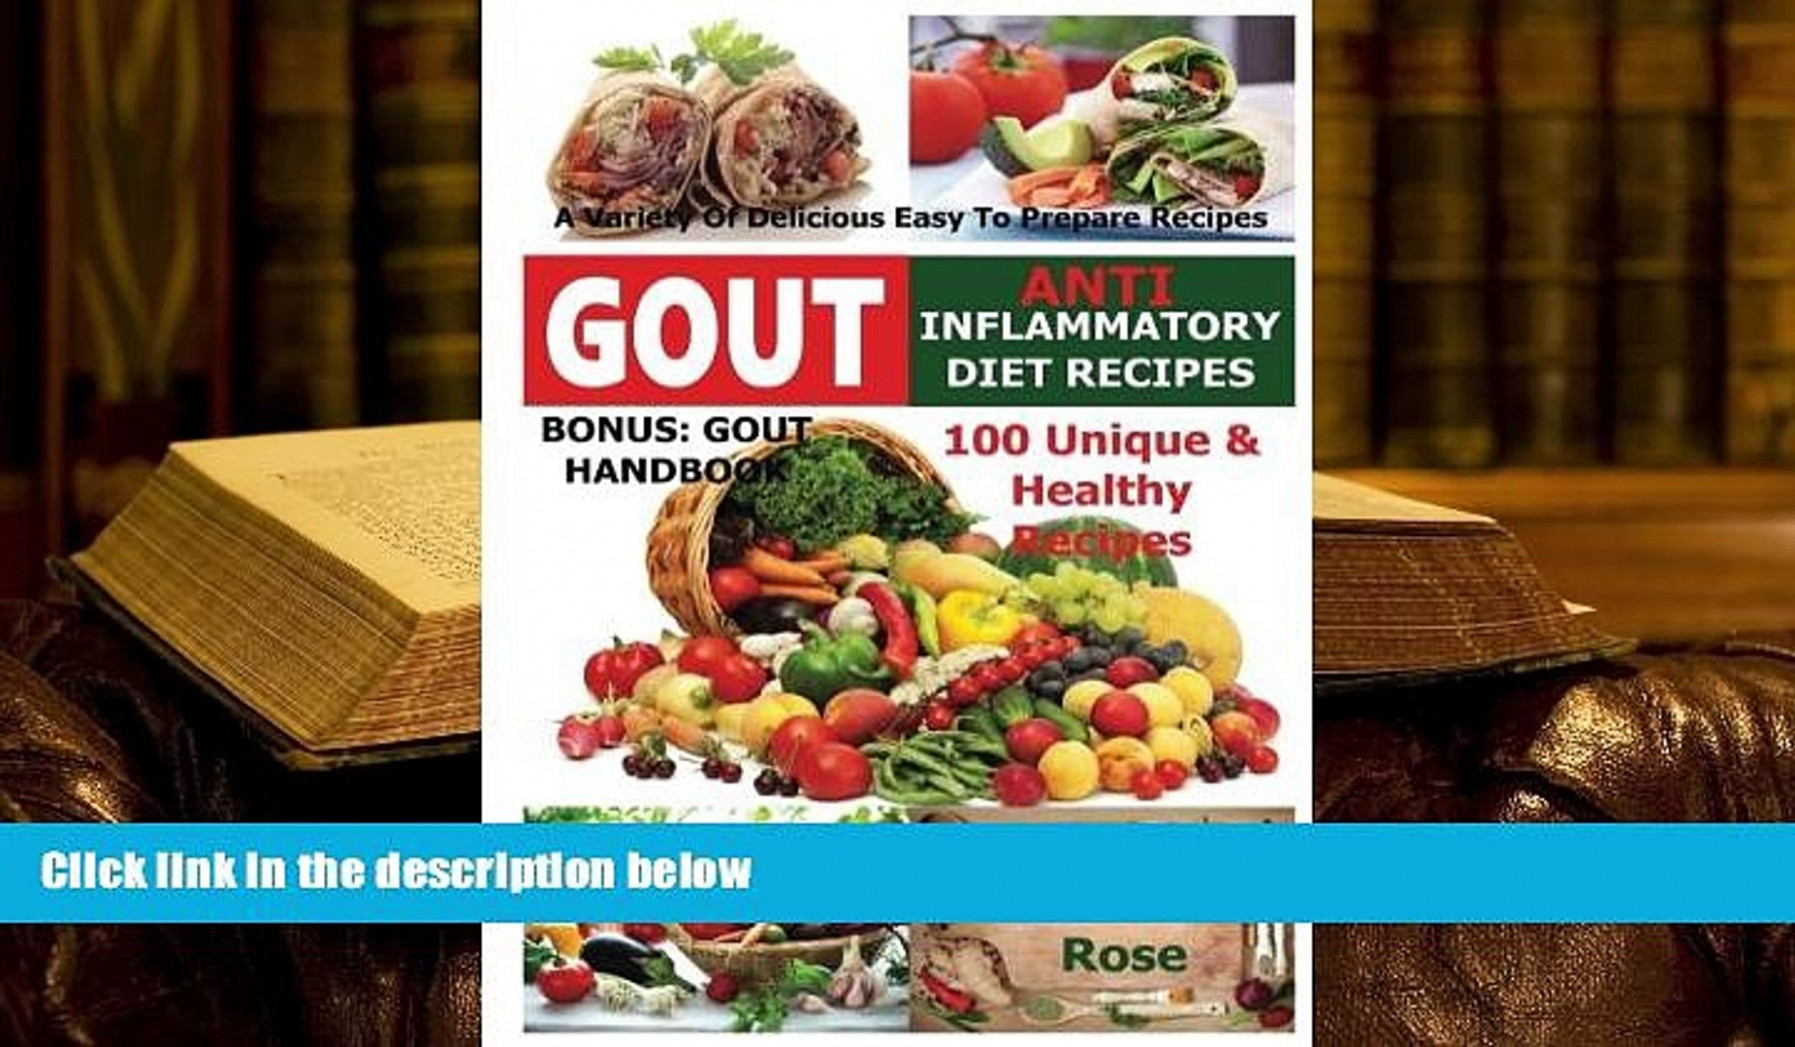 BEST PDF Gout Anti Inflammatory Diet Recipes - 10 Unique Healthy Recipes A  Variety Of